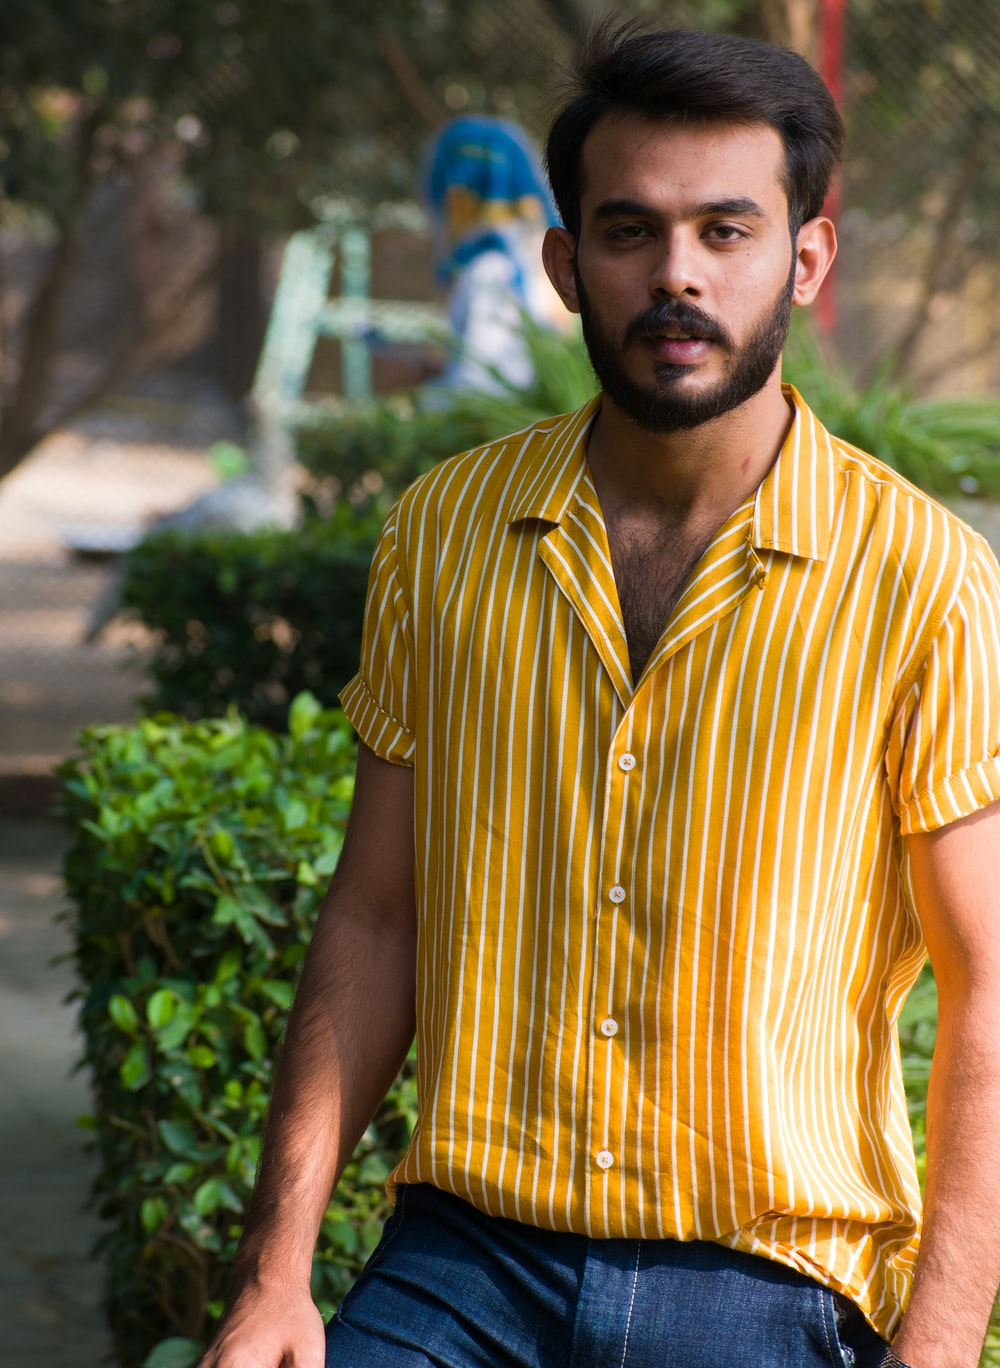 man in yellow and white striped button up shirt standing near green plants during daytime